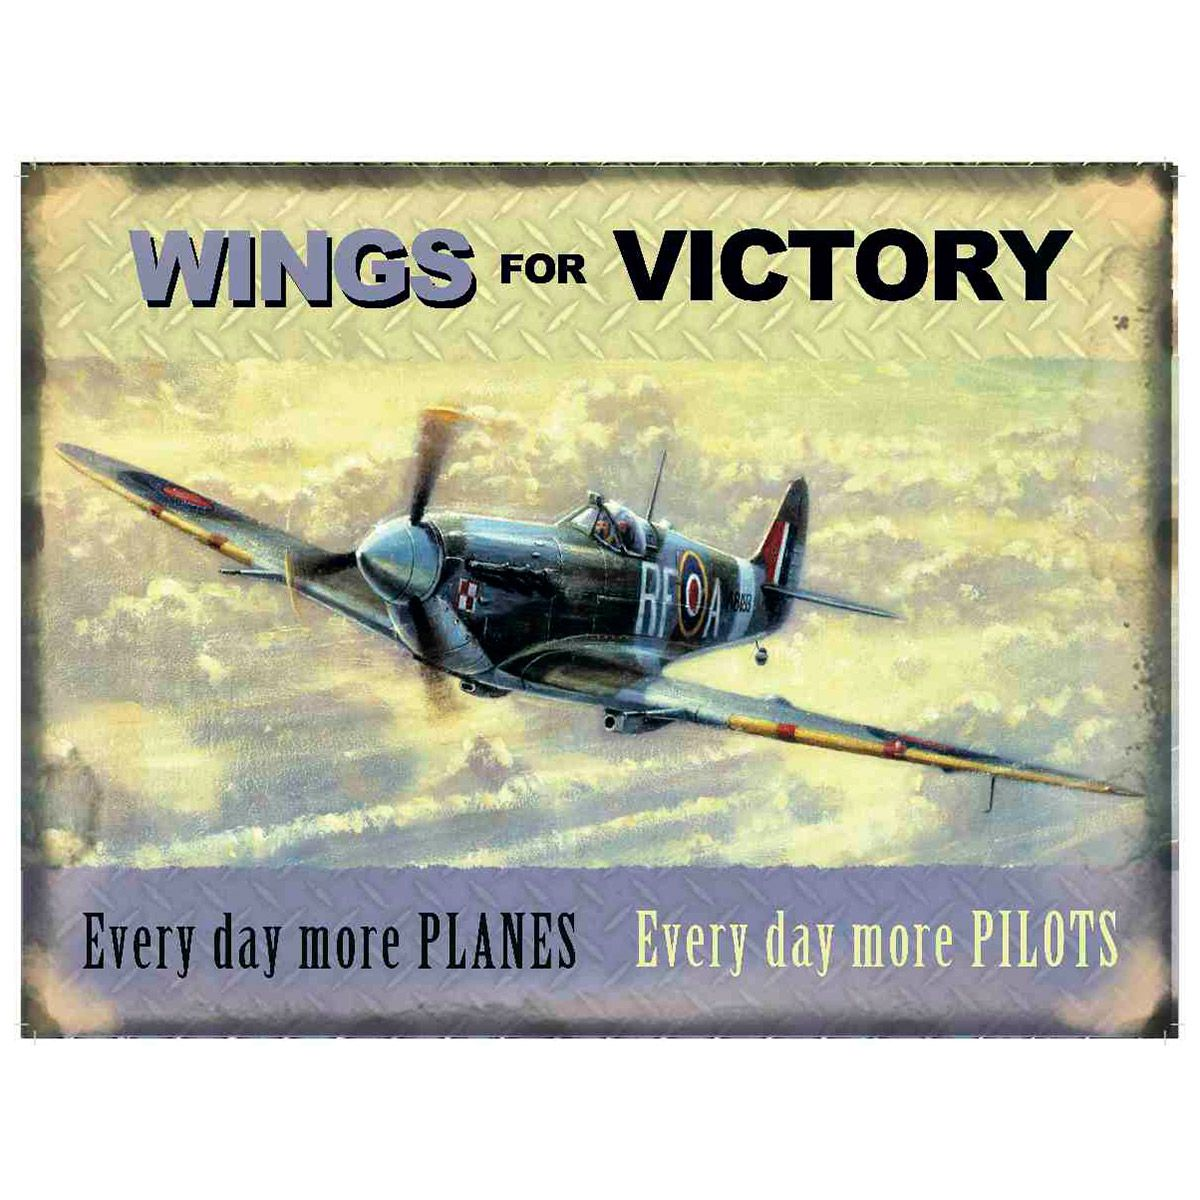 Small Metal Tin Sign Spitfire Plane Pilot RAF War Vintage Wings for Victory